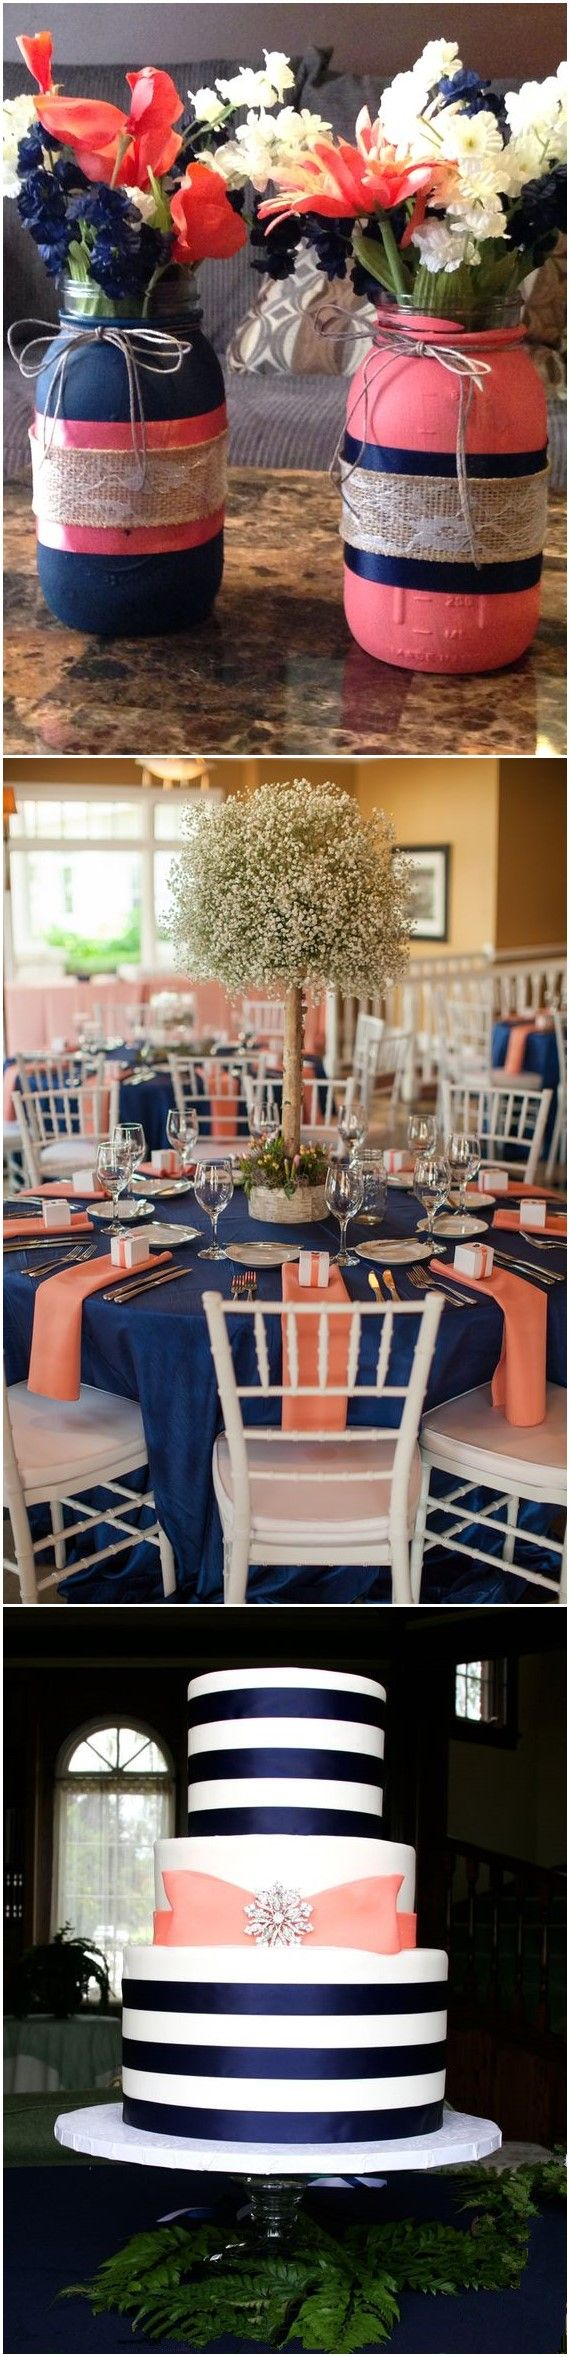 Wedding Ideas » 18 Peach and Navy Blue Inspired Wedding Ideas »   ❤️ See more:  http://www.weddinginclude.com/2017/05/peach-and-navy-blue-inspired-wedding-ideas/